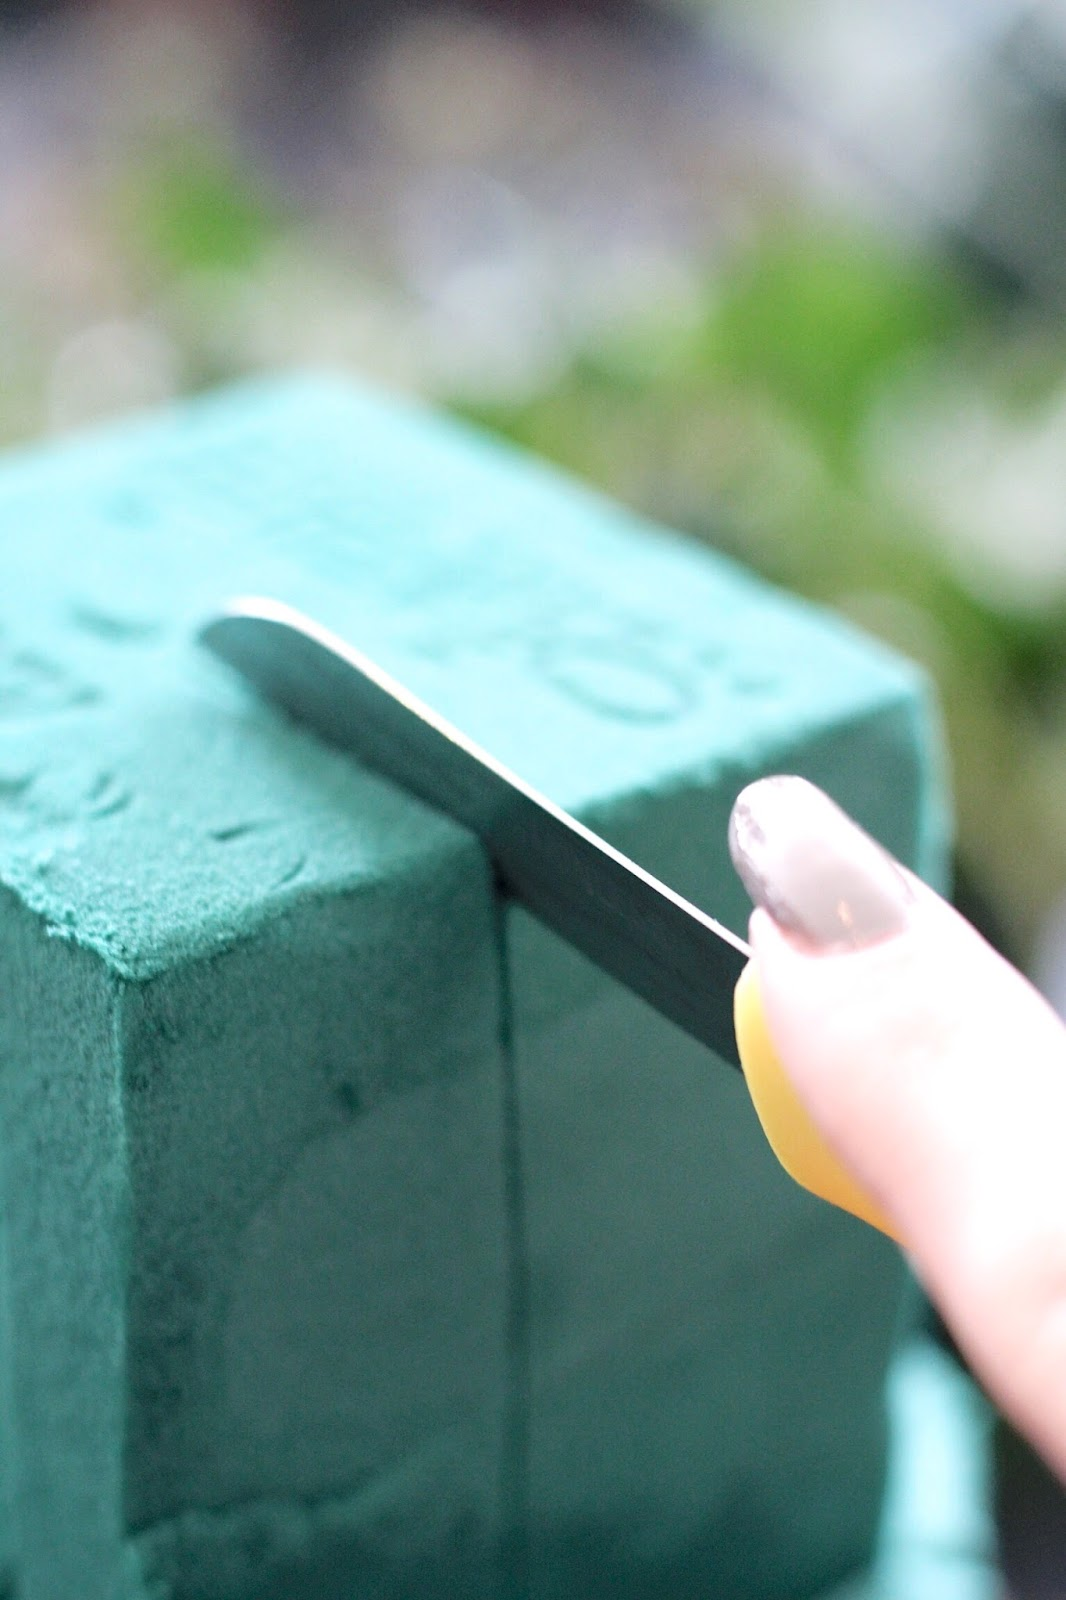 Green floral foam used in floristry